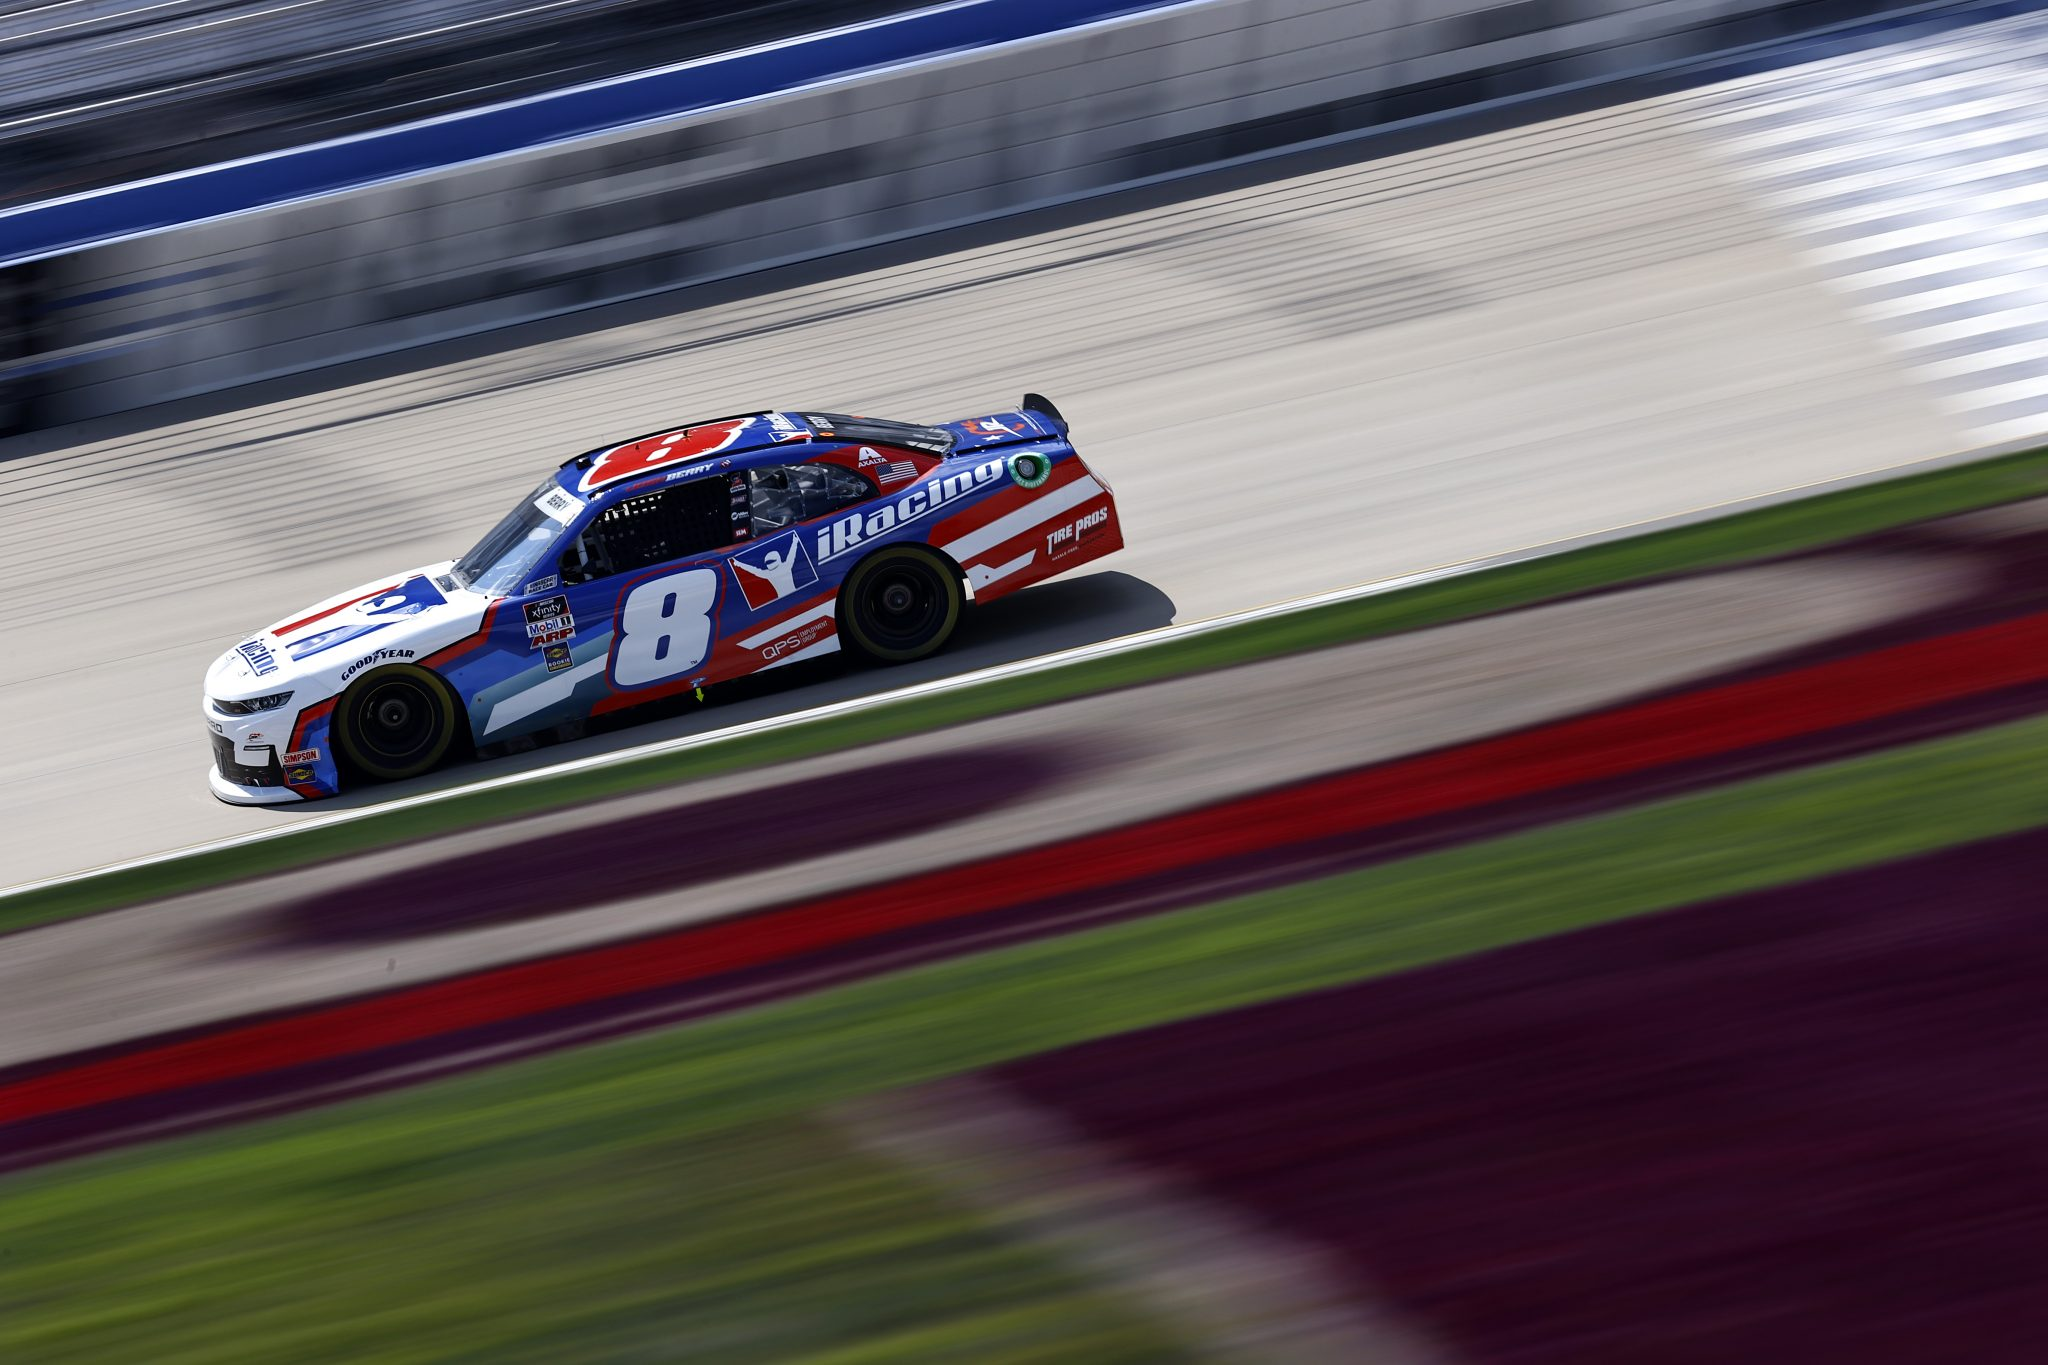 LEBANON, TENNESSEE - JUNE 18: Josh Berry, driver of the #8 iRacing Chevrolet, drives during practice for the NASCAR Xfinity Series Tennessee Lottery 250 at Nashville Superspeedway on June 18, 2021 in Lebanon, Tennessee. (Photo by Jared C. Tilton/Getty Images) | Getty Images